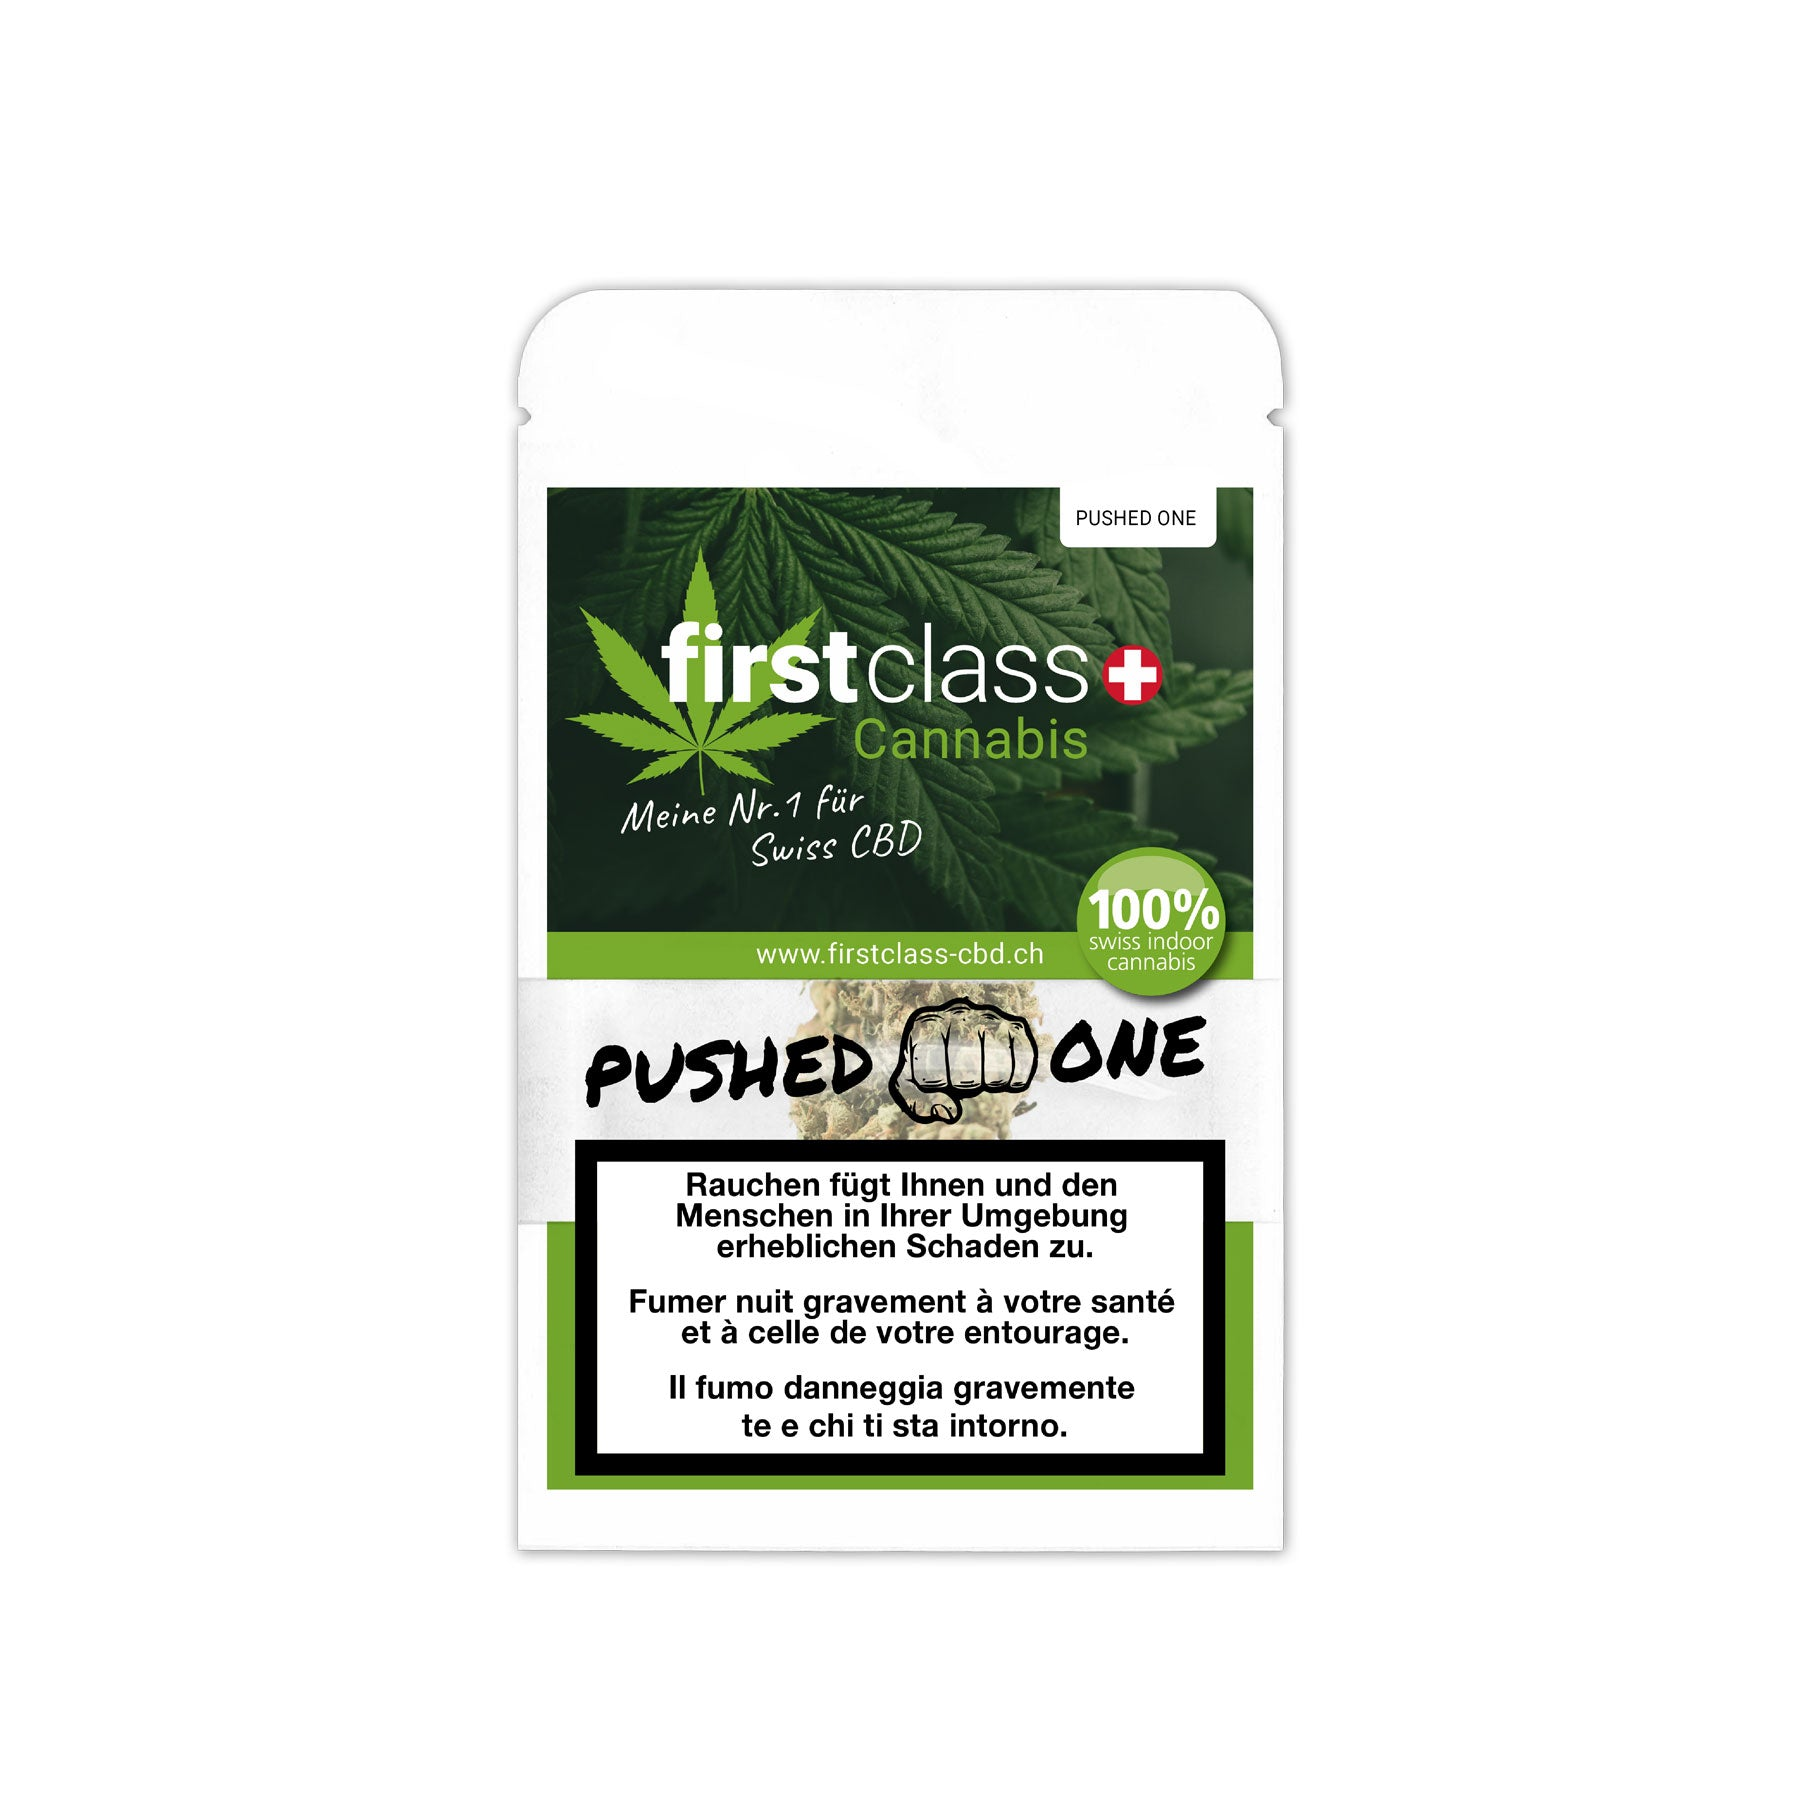 Pushed One-CBD Cannabis-First Class CBD-Swiss CBD Shop-uWeed